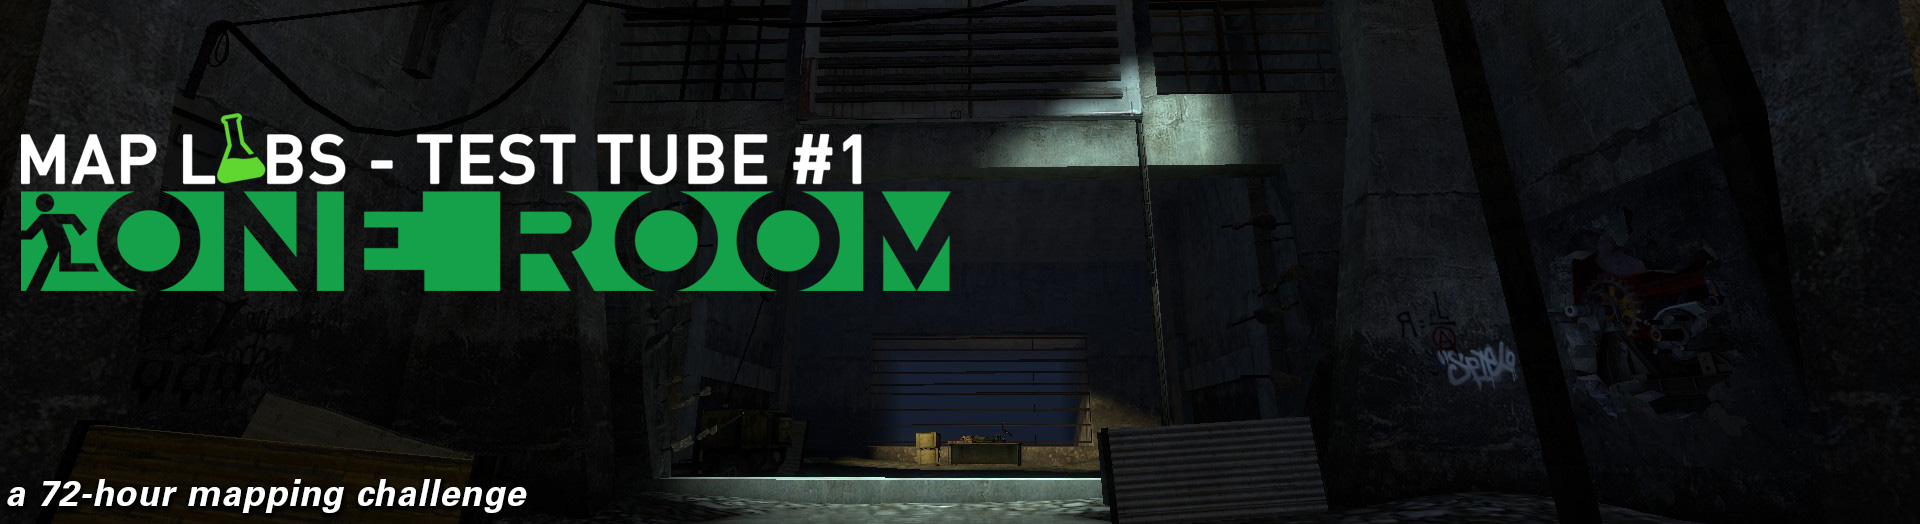 Map Labs Test Tube #1 - One Room